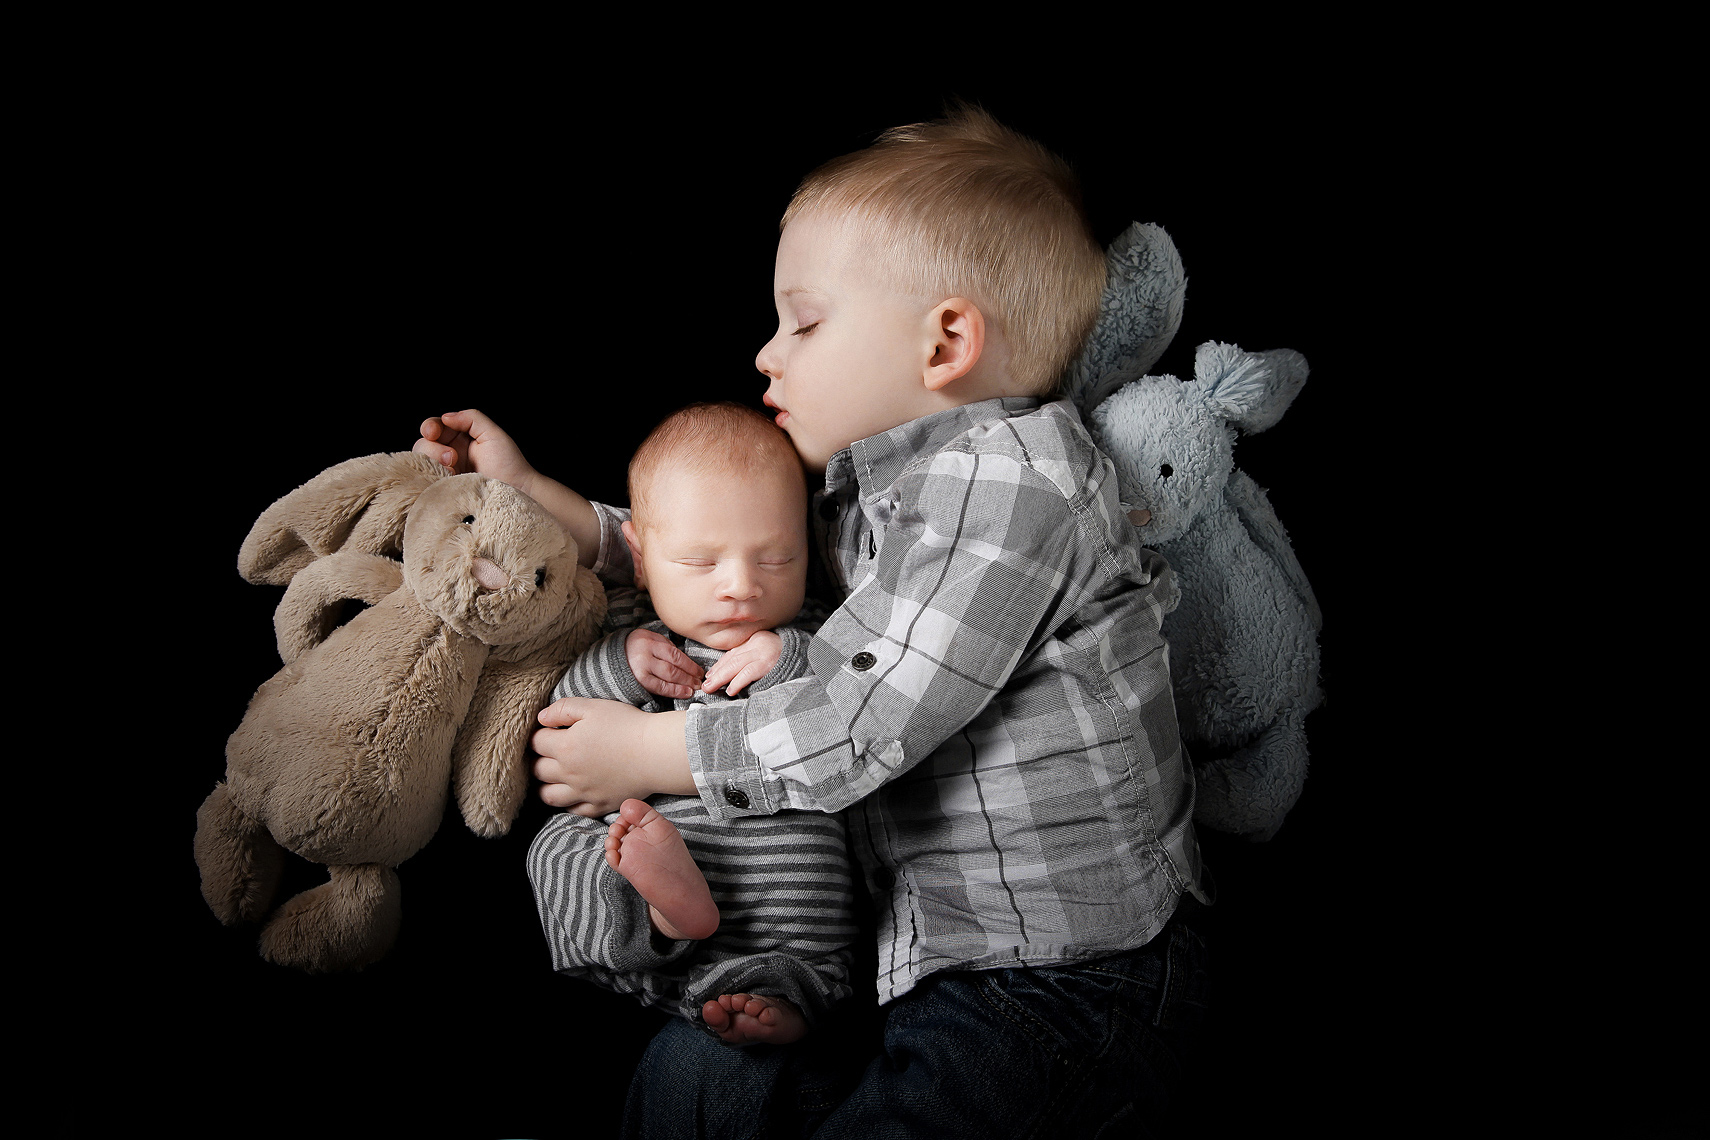 brothers-newborn-baby-child-family-photographers-london-toronto-ontario